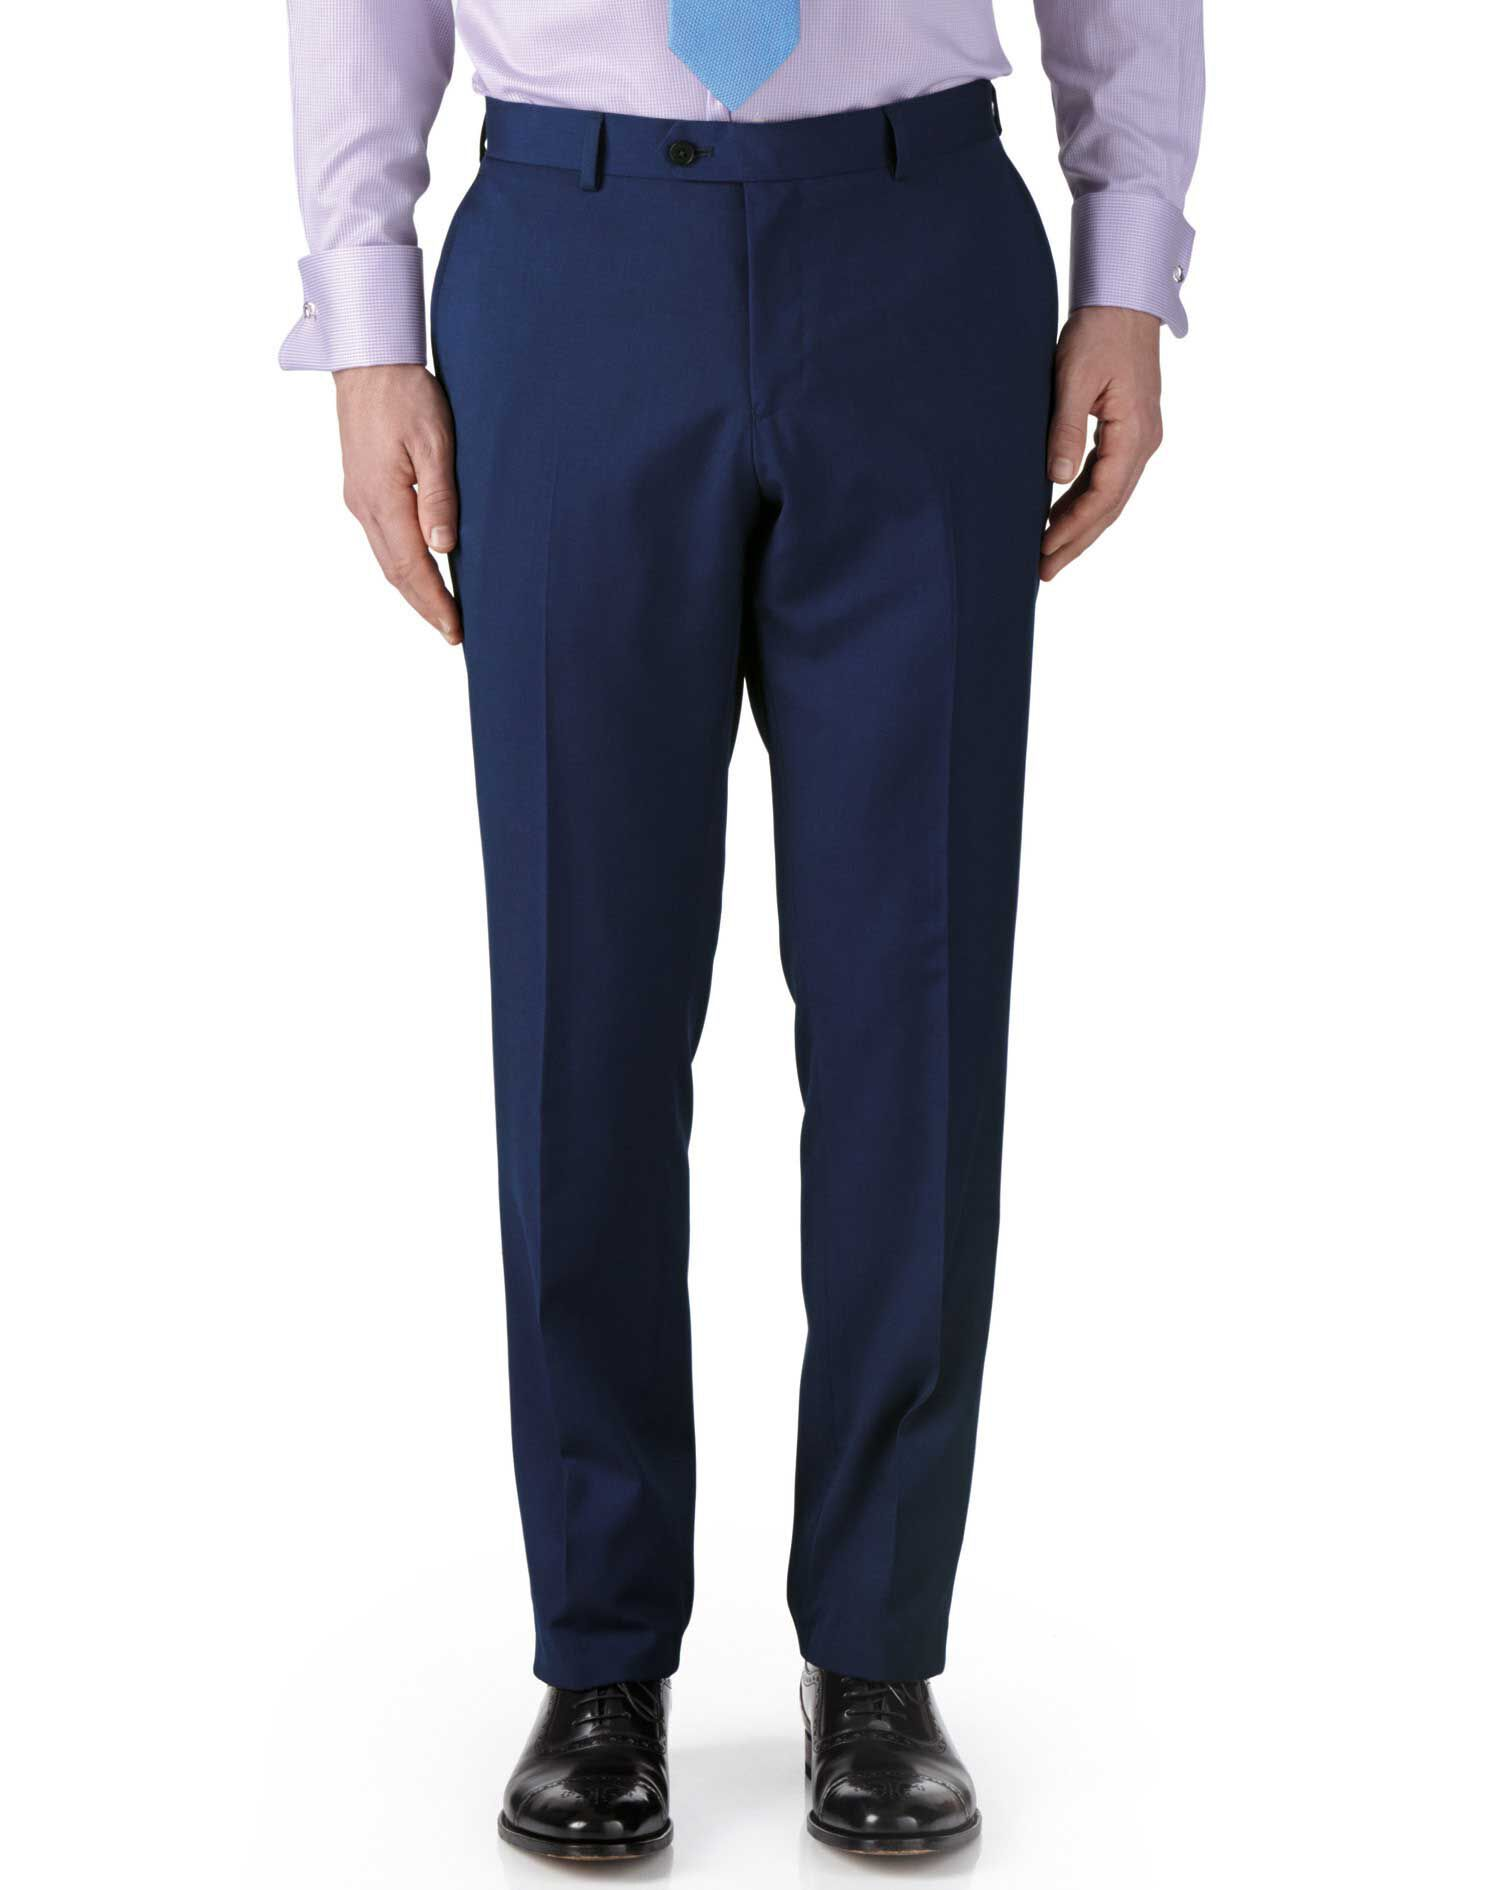 Royal Blue Classic Fit Twill Business Suit Trousers Size W34 L38 by Charles Tyrwhitt